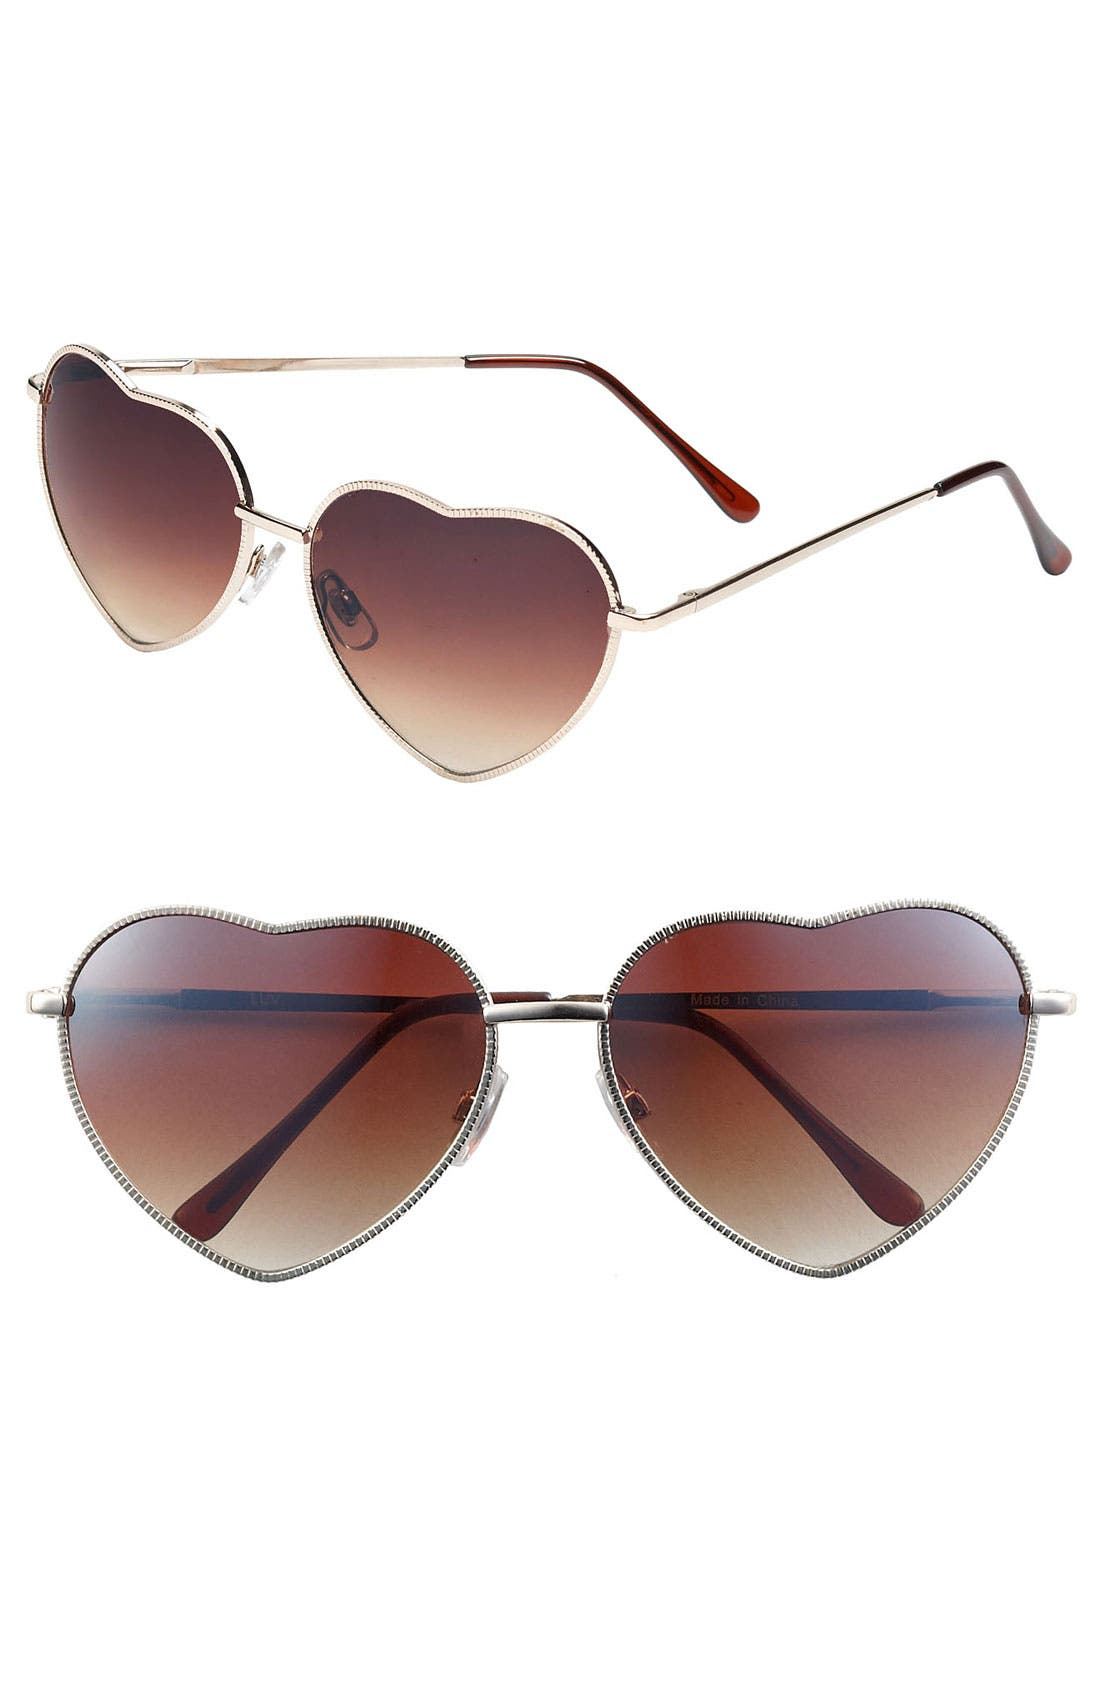 Alternate Image 1 Selected - BP. Heart Shaped 58mm Sunglasses